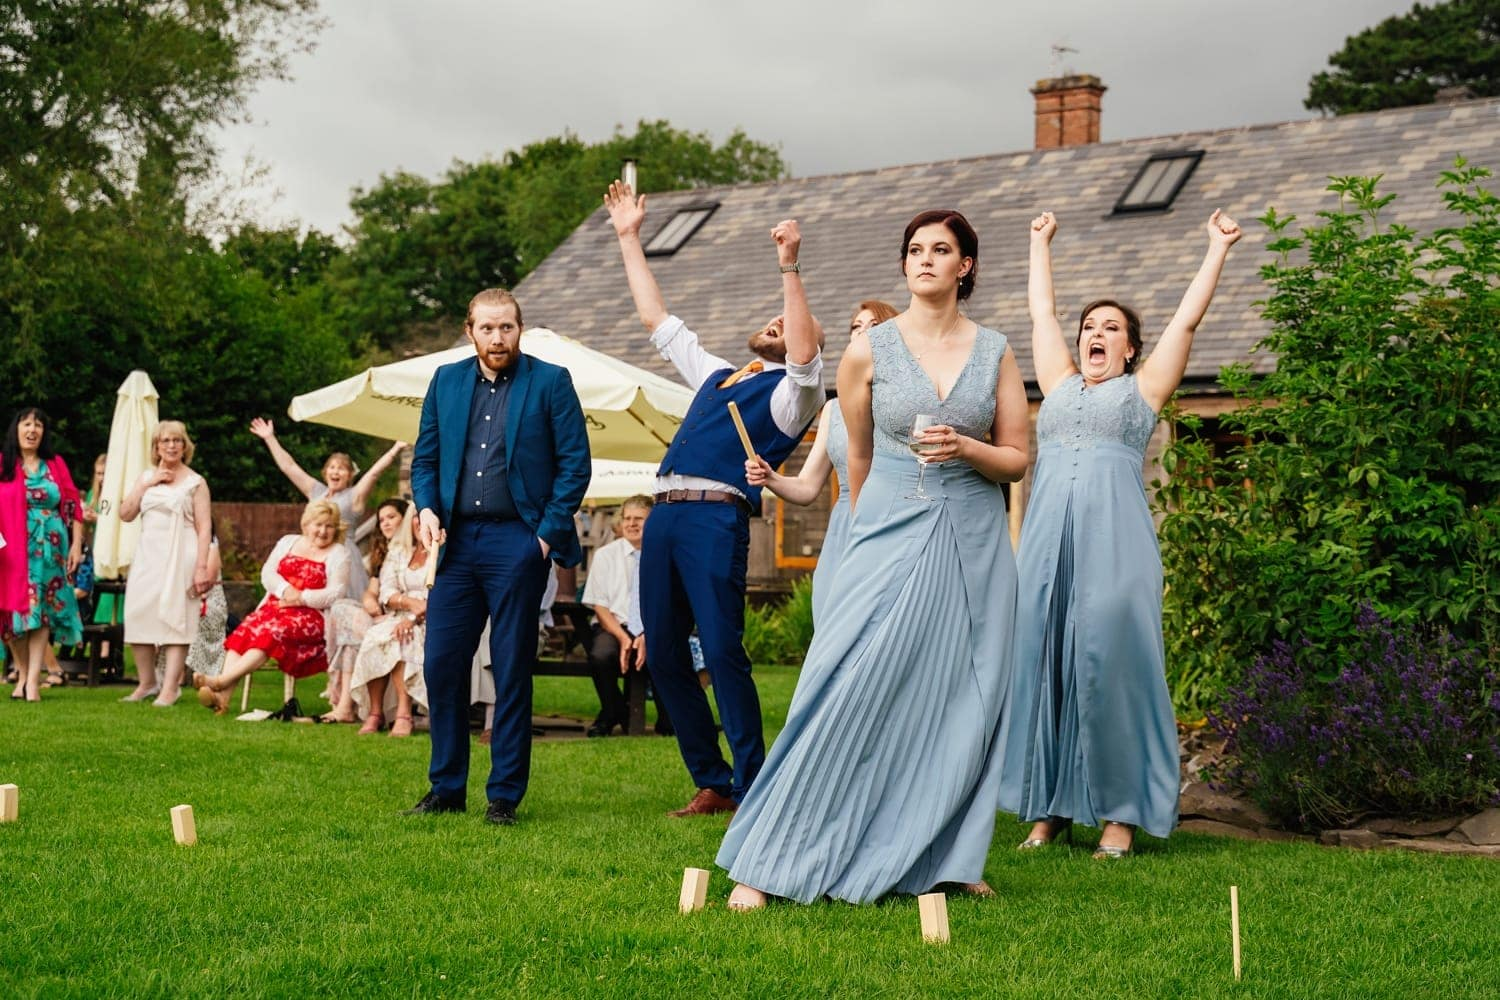 lawn games at The Old Stables Wedding venue